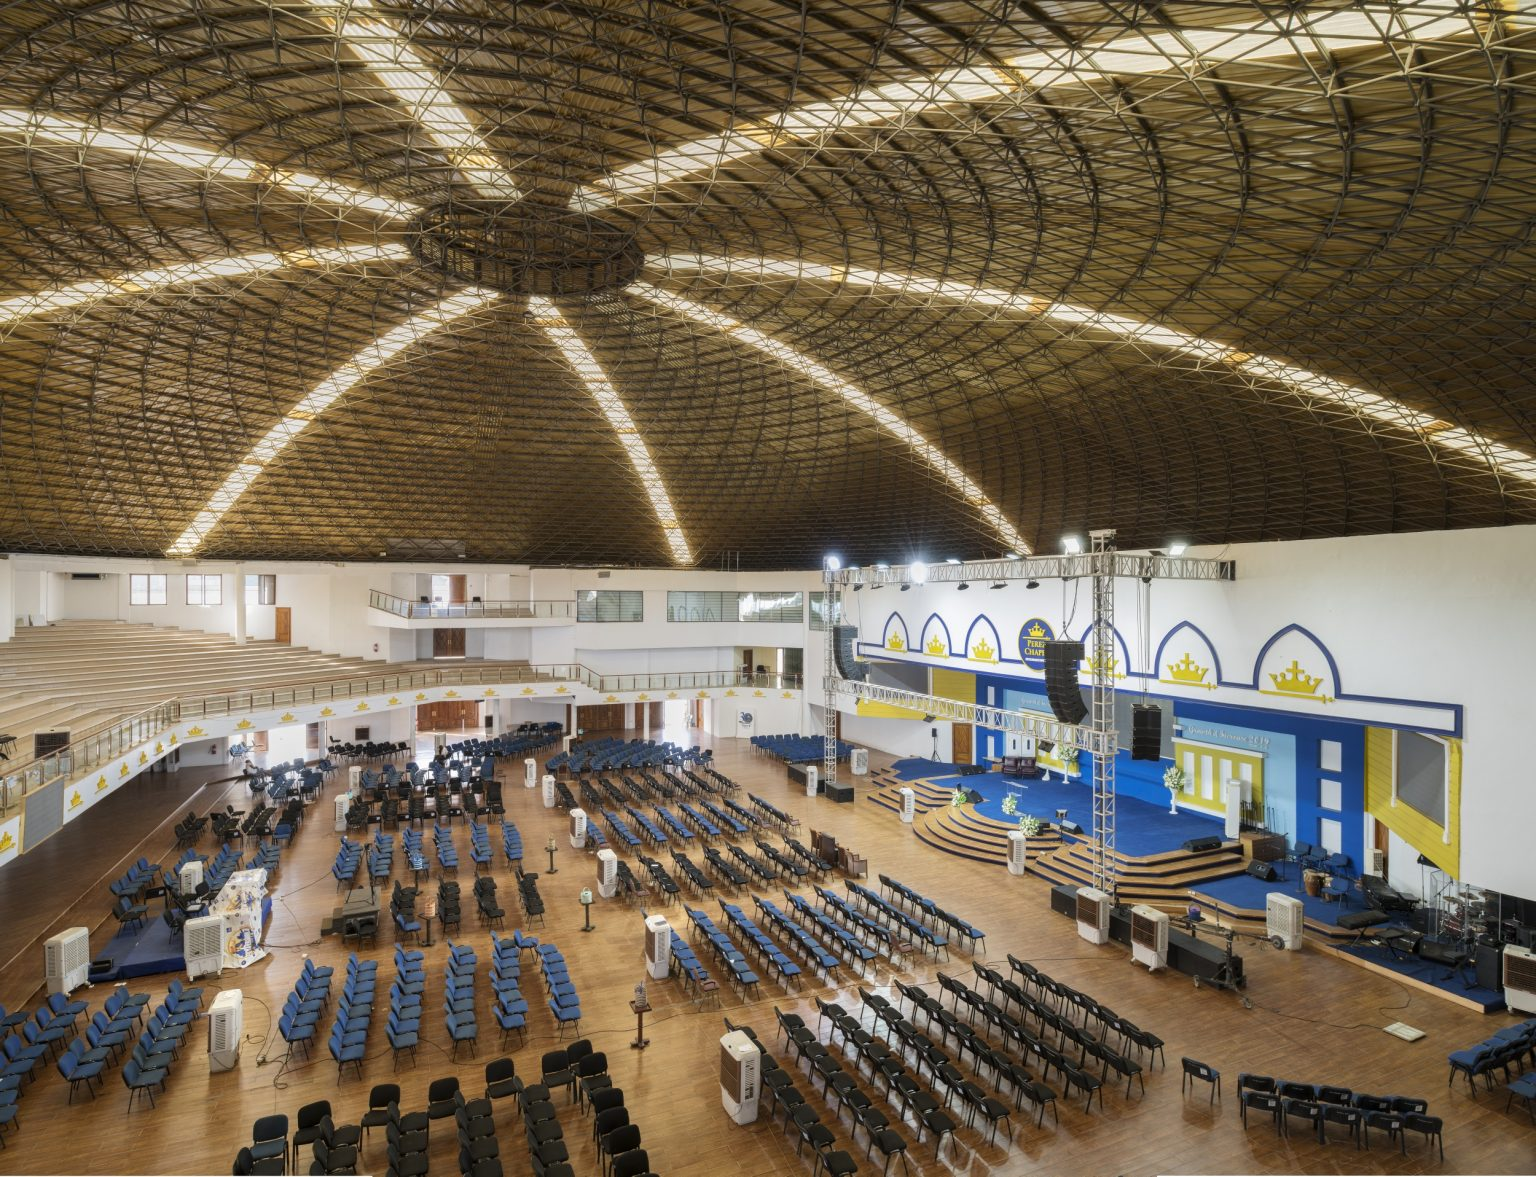 Accra, Republic of Ghana, May 2019 - Interior view of Perez Dome, the main auditorium and headquarter of Perez Chapel International located in in Dzorwulu and considered among the largest auditoriums in the country. Perez Chapel International, formerly known as the Word Miracle Church International is an evangelical, Charismatic church founded in Tamale, Northern Ghana in 1987 by bishop Charles Agyinasare who is nowadays among the richest pastors in Ghana. With over 400 local branches and several abroad is one of the leading churches of the country. ><                                          Accra, Repubblica del Ghana, maggio 2019 - Una veduta interna del Perez Dome, l'auditorium principale e quartier generale della Perez Chapel International considerato tra gli auditorium maggiori del paese. Perez Chapel International, precedentemente nota come Word Miracle Church International è una chiesa evangelica, carismatica fondata a Tamale, nel Ghana Settentrionale nel 1987 dal vescovo Charles Agyinasare, che oggi è tra i più ricchi pastori del Ghana. Con oltre 400 filiali locali e diverse altre all'estero è una delle principali chiese del paese.